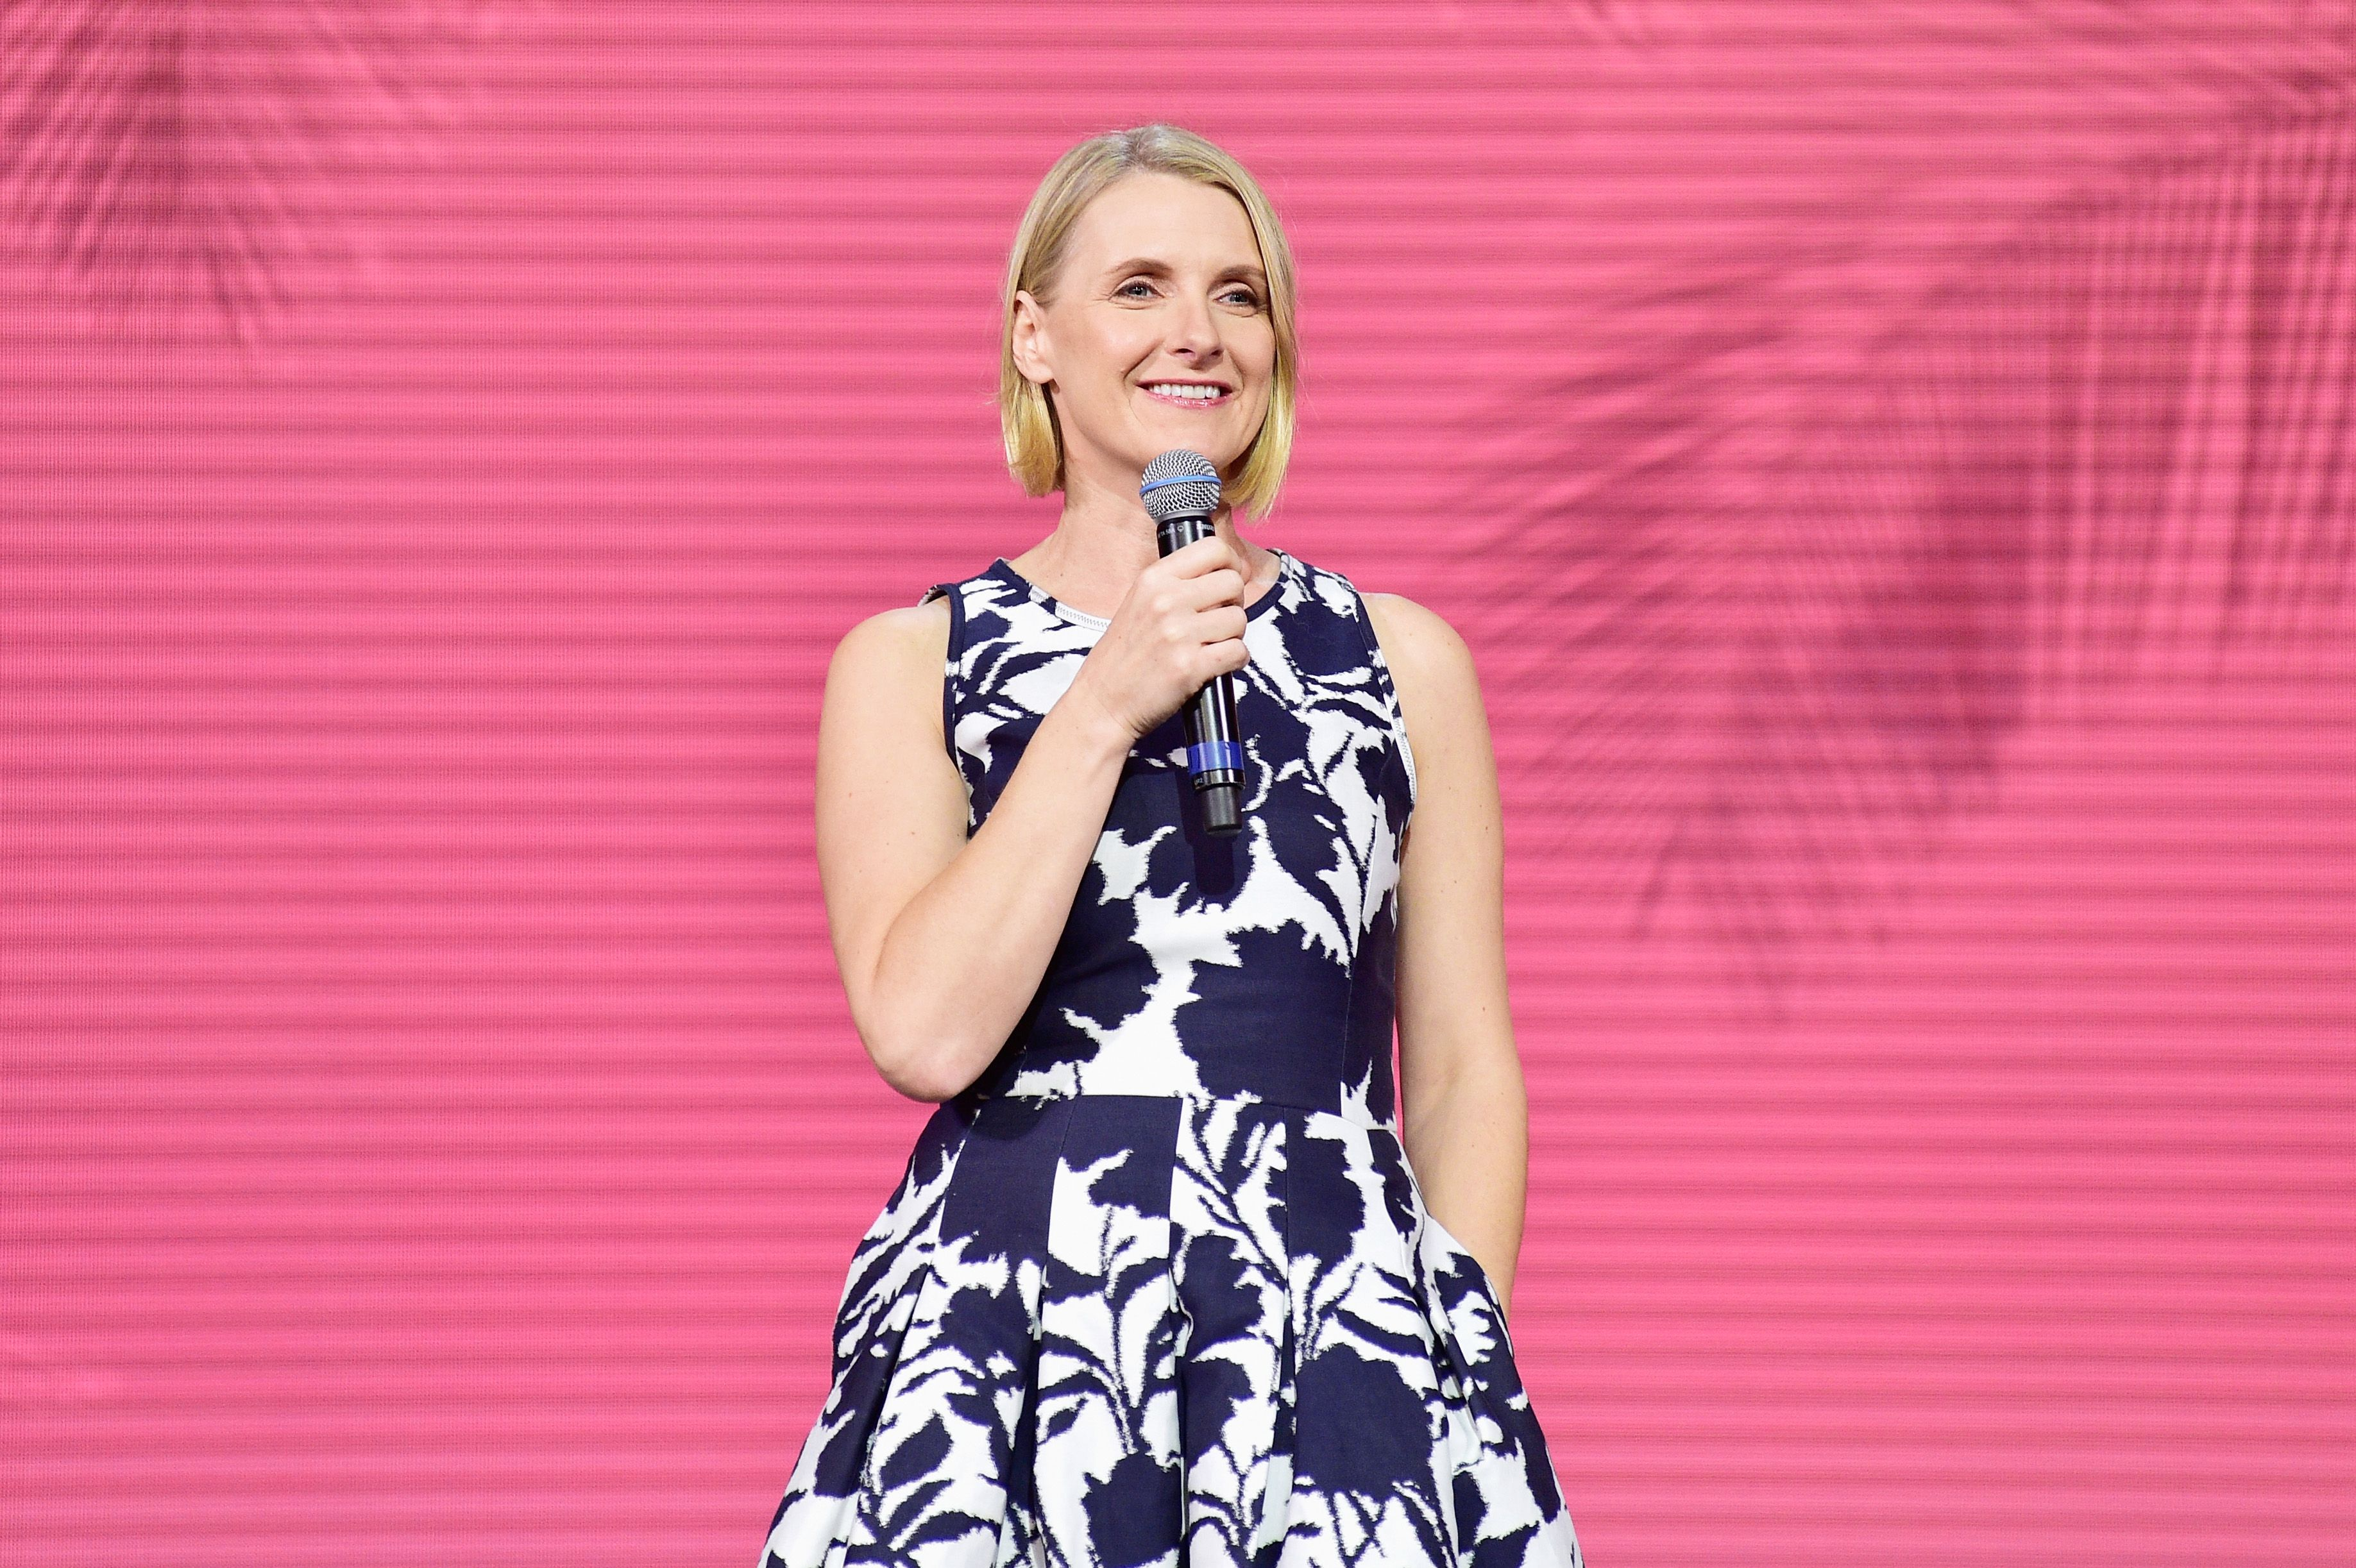 Eat, Pray, Love Author Elizabeth Gilbert Has Found Love with Her Late Partner's Close Friend